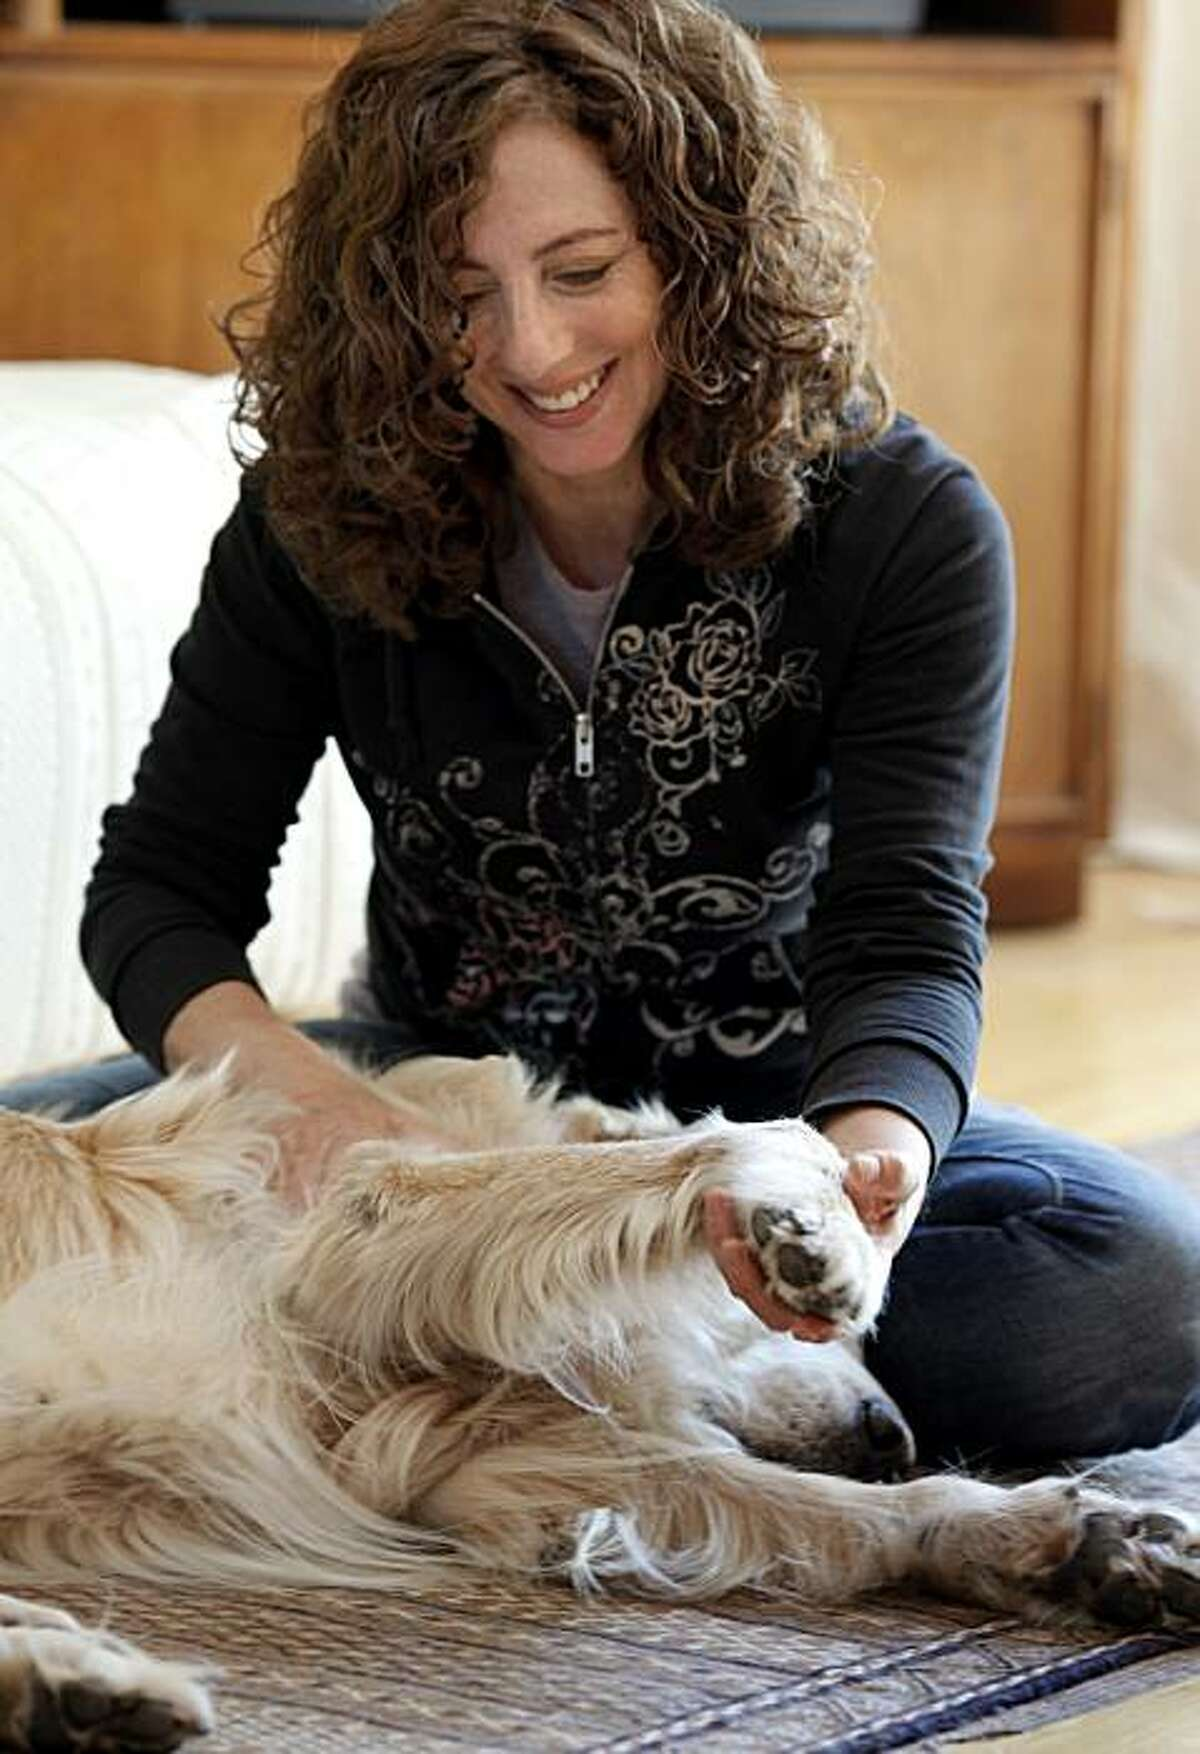 Shelah Barr smiled as she reflected on her unique profession. Shelah Barr massages dogs for a living. She visits with Pico, a 13 year old Golden Retriever, in San Francisco, Calif. Thursday July 1, 2010.